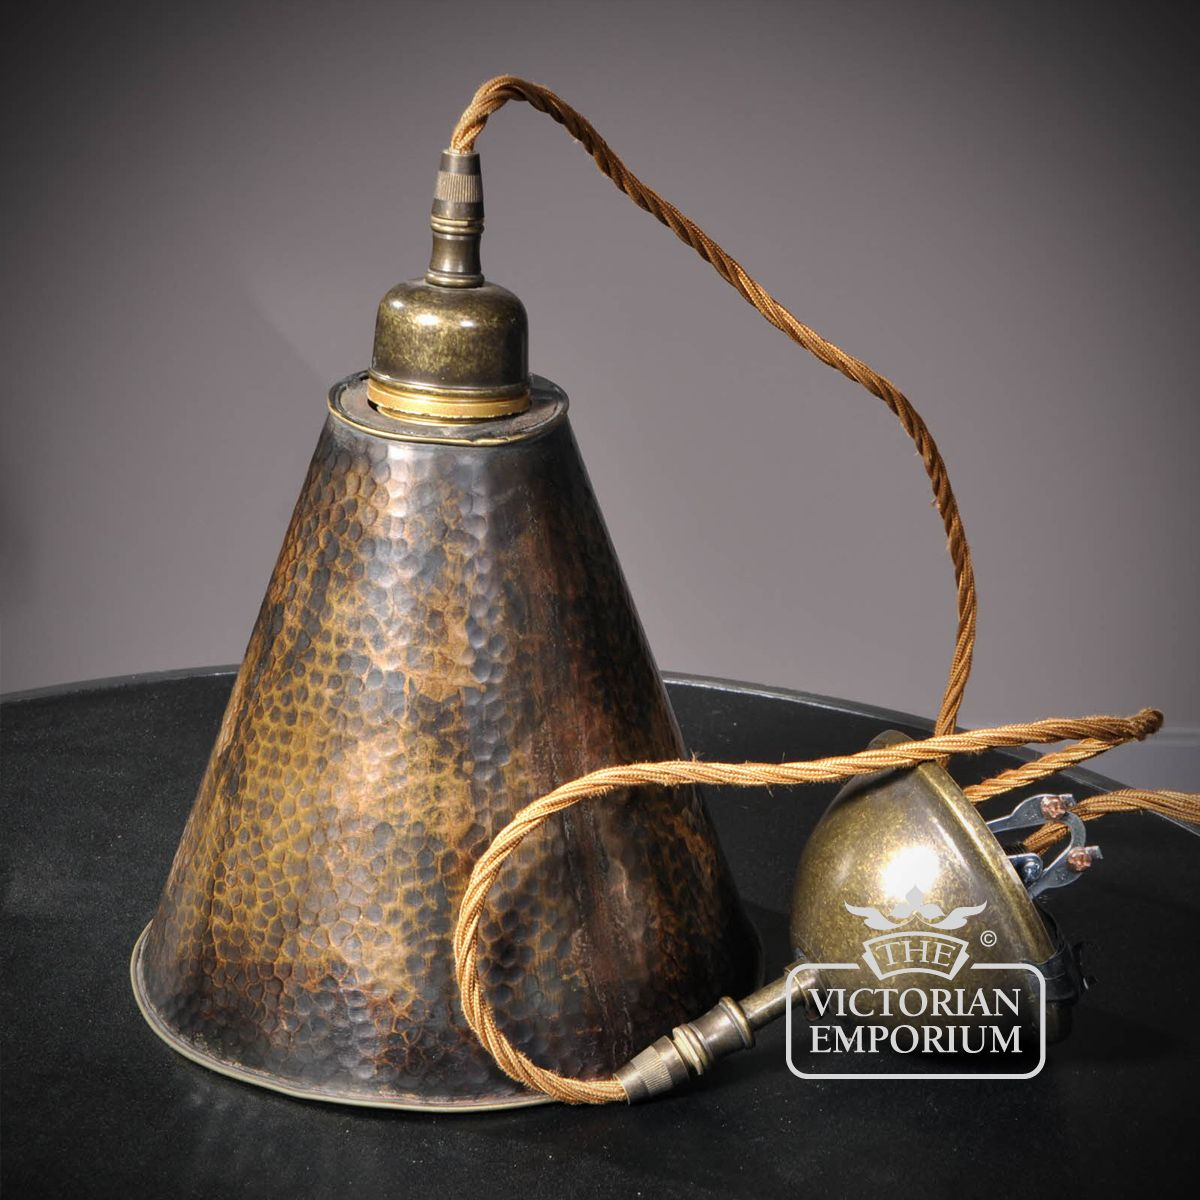 Copper Wall Lamp Shades : Small copper lamp shade with antique style cable Interior ceiling and hanging lights